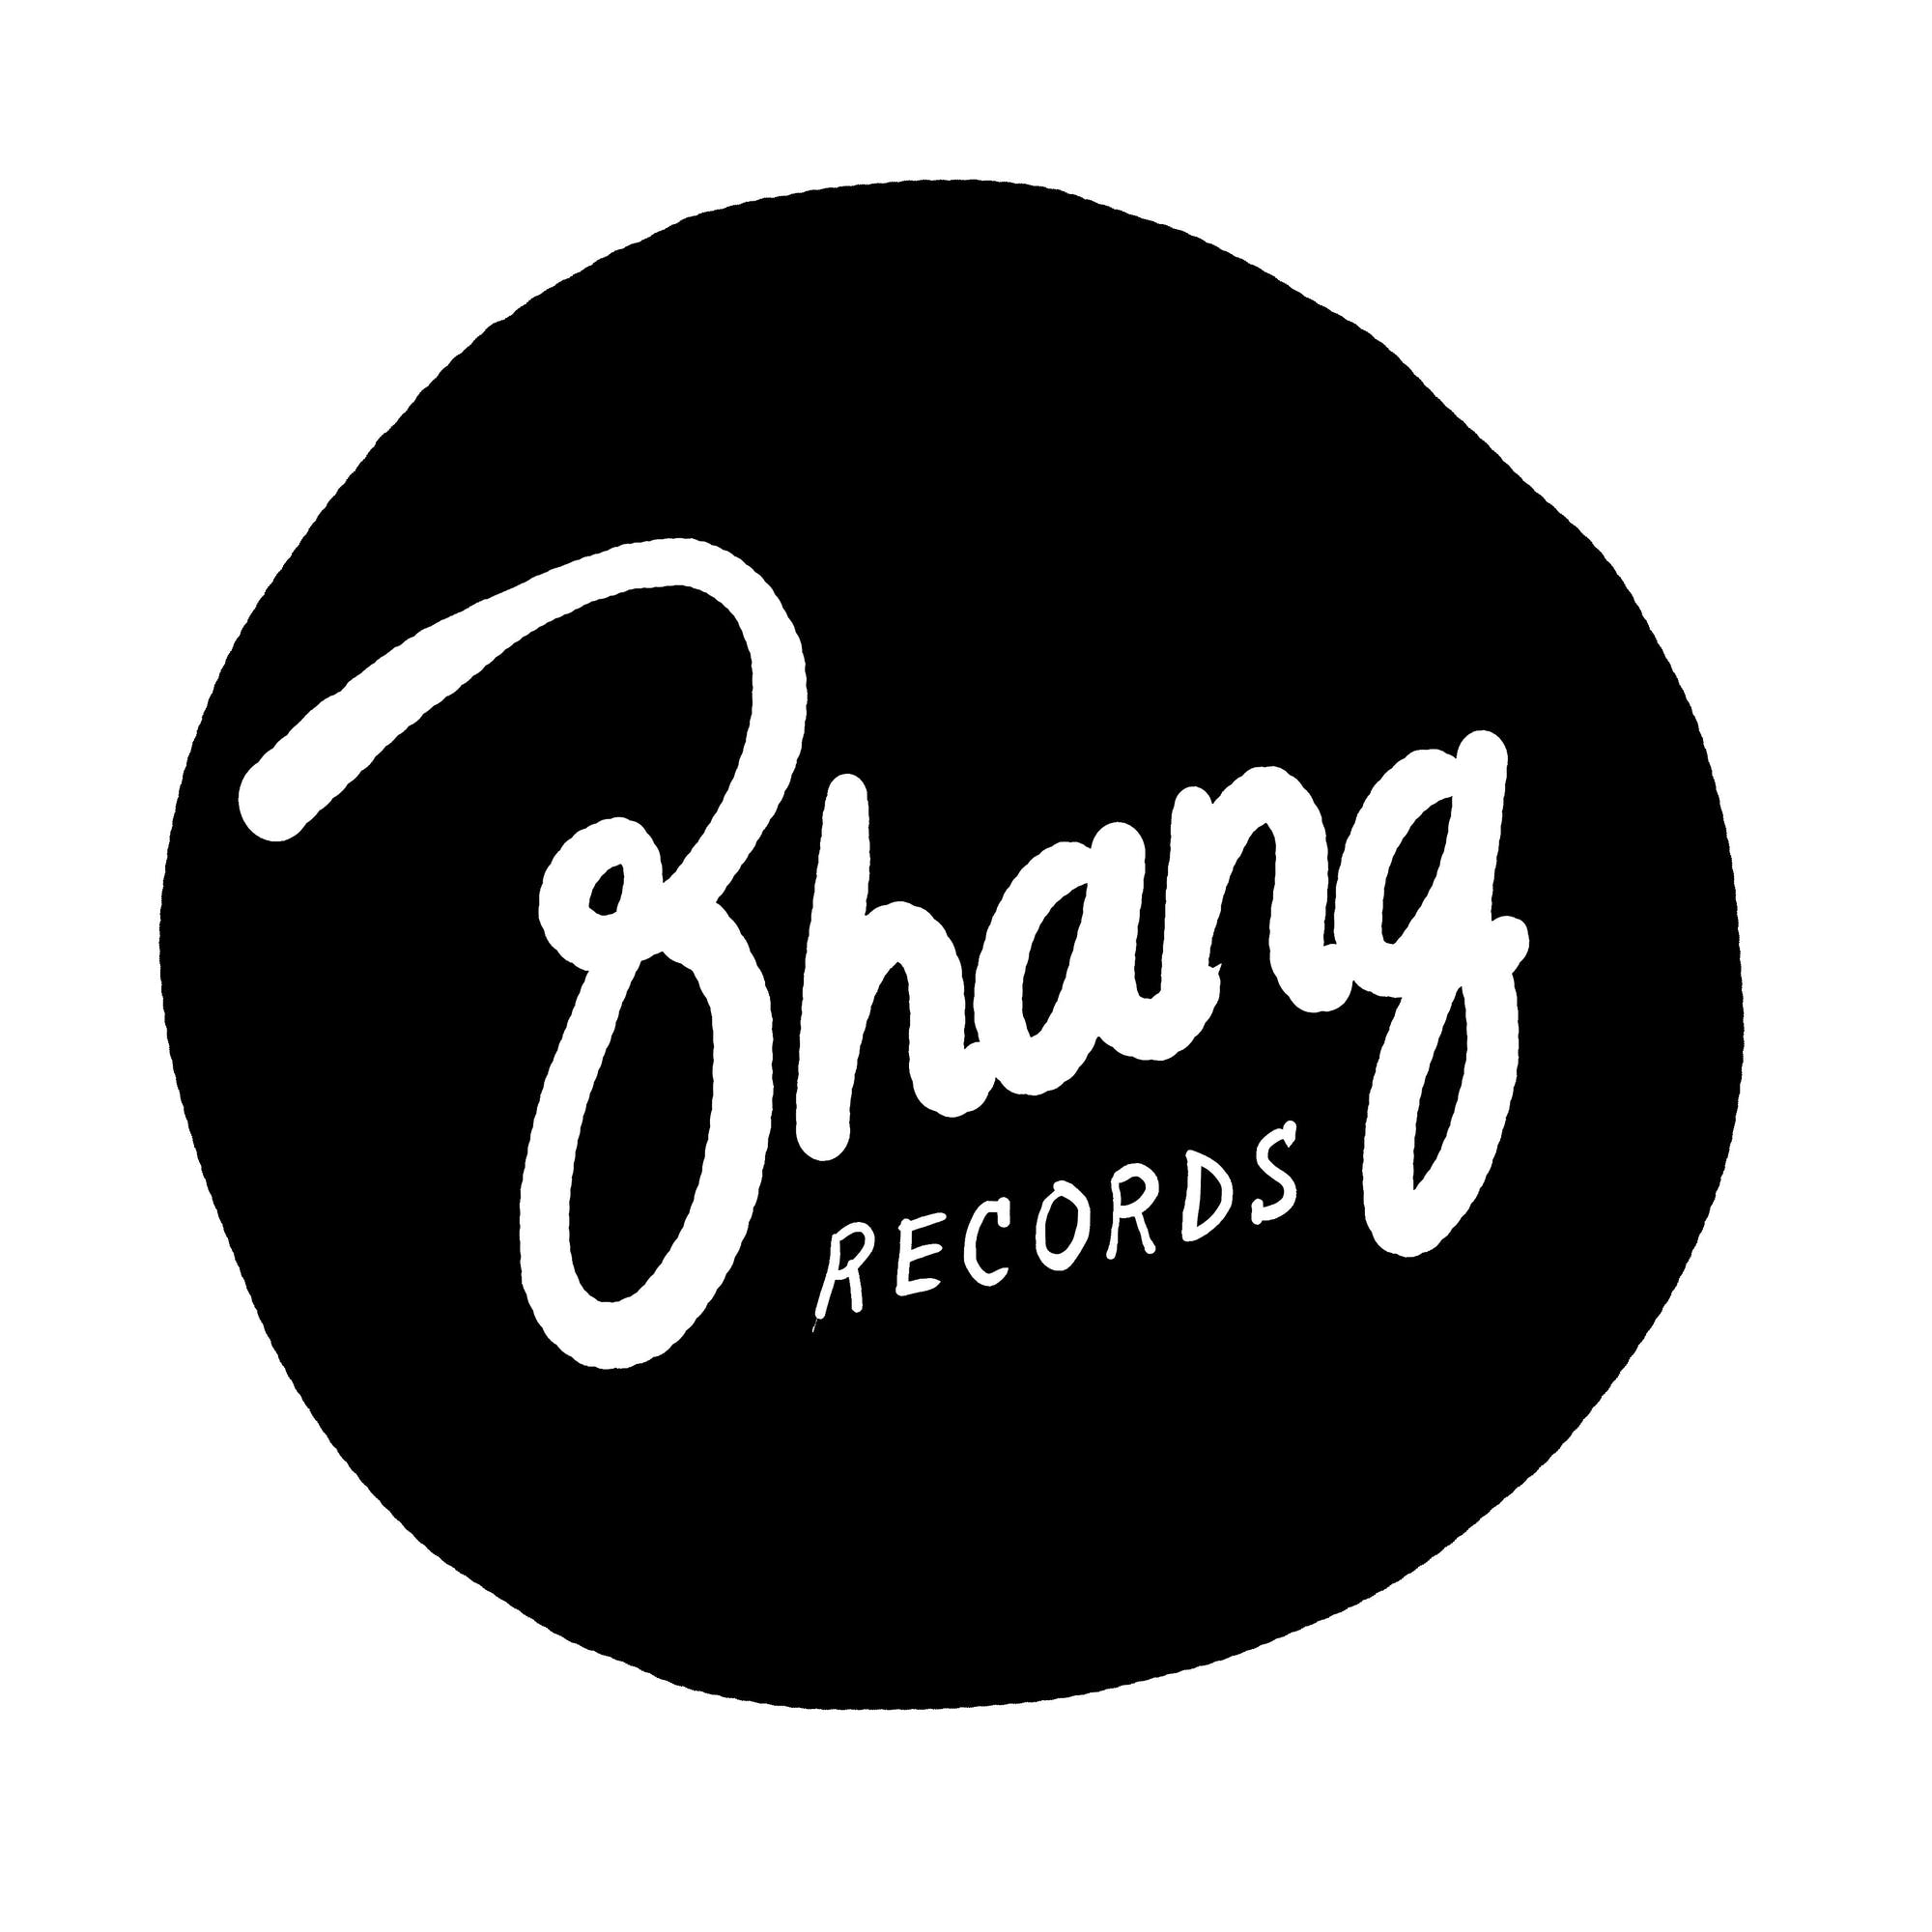 Bhang Records - Record Store Image